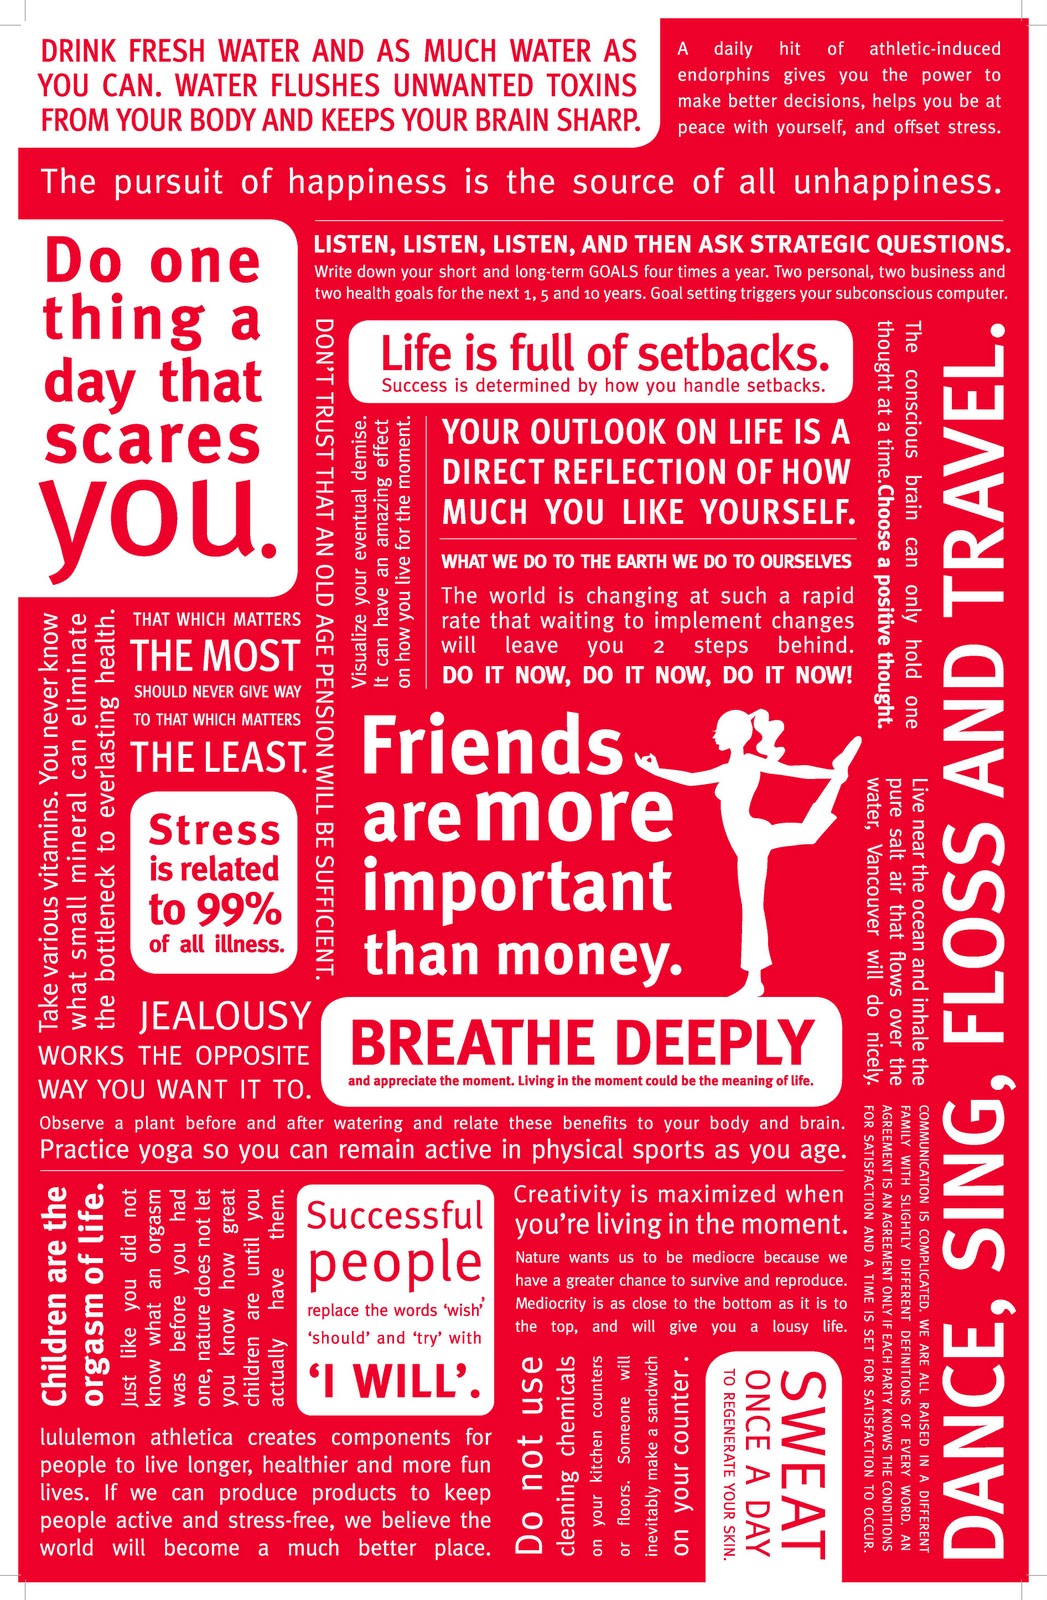 lululemon manifesto A Surreal Dream